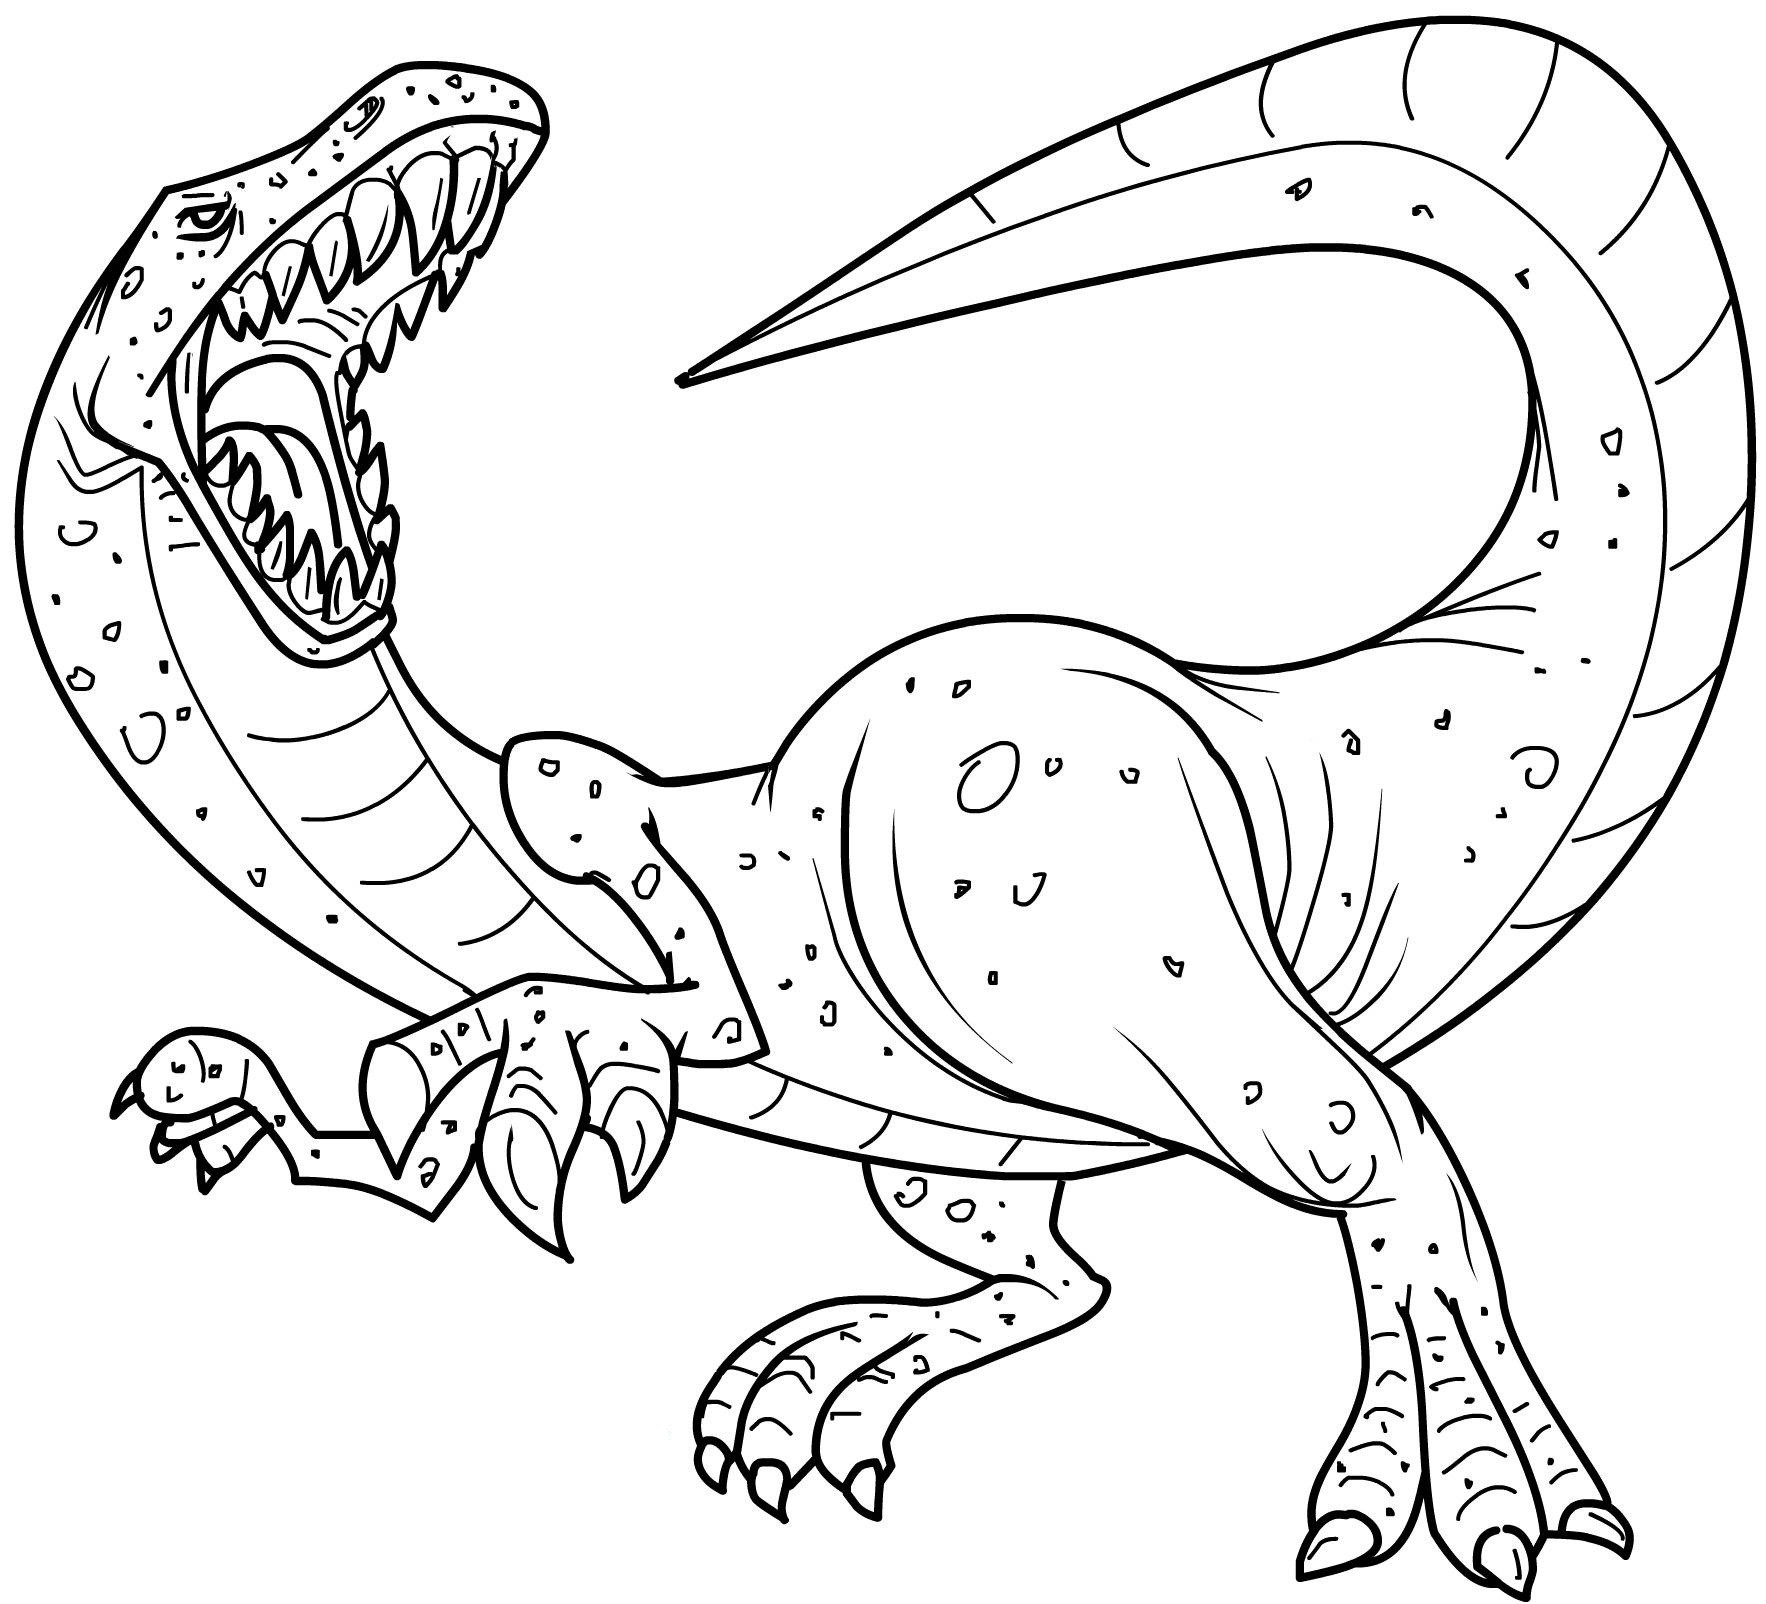 colouring dinosaur pictures cute dinosaur coloring pages for kids at getcoloringscom dinosaur pictures colouring